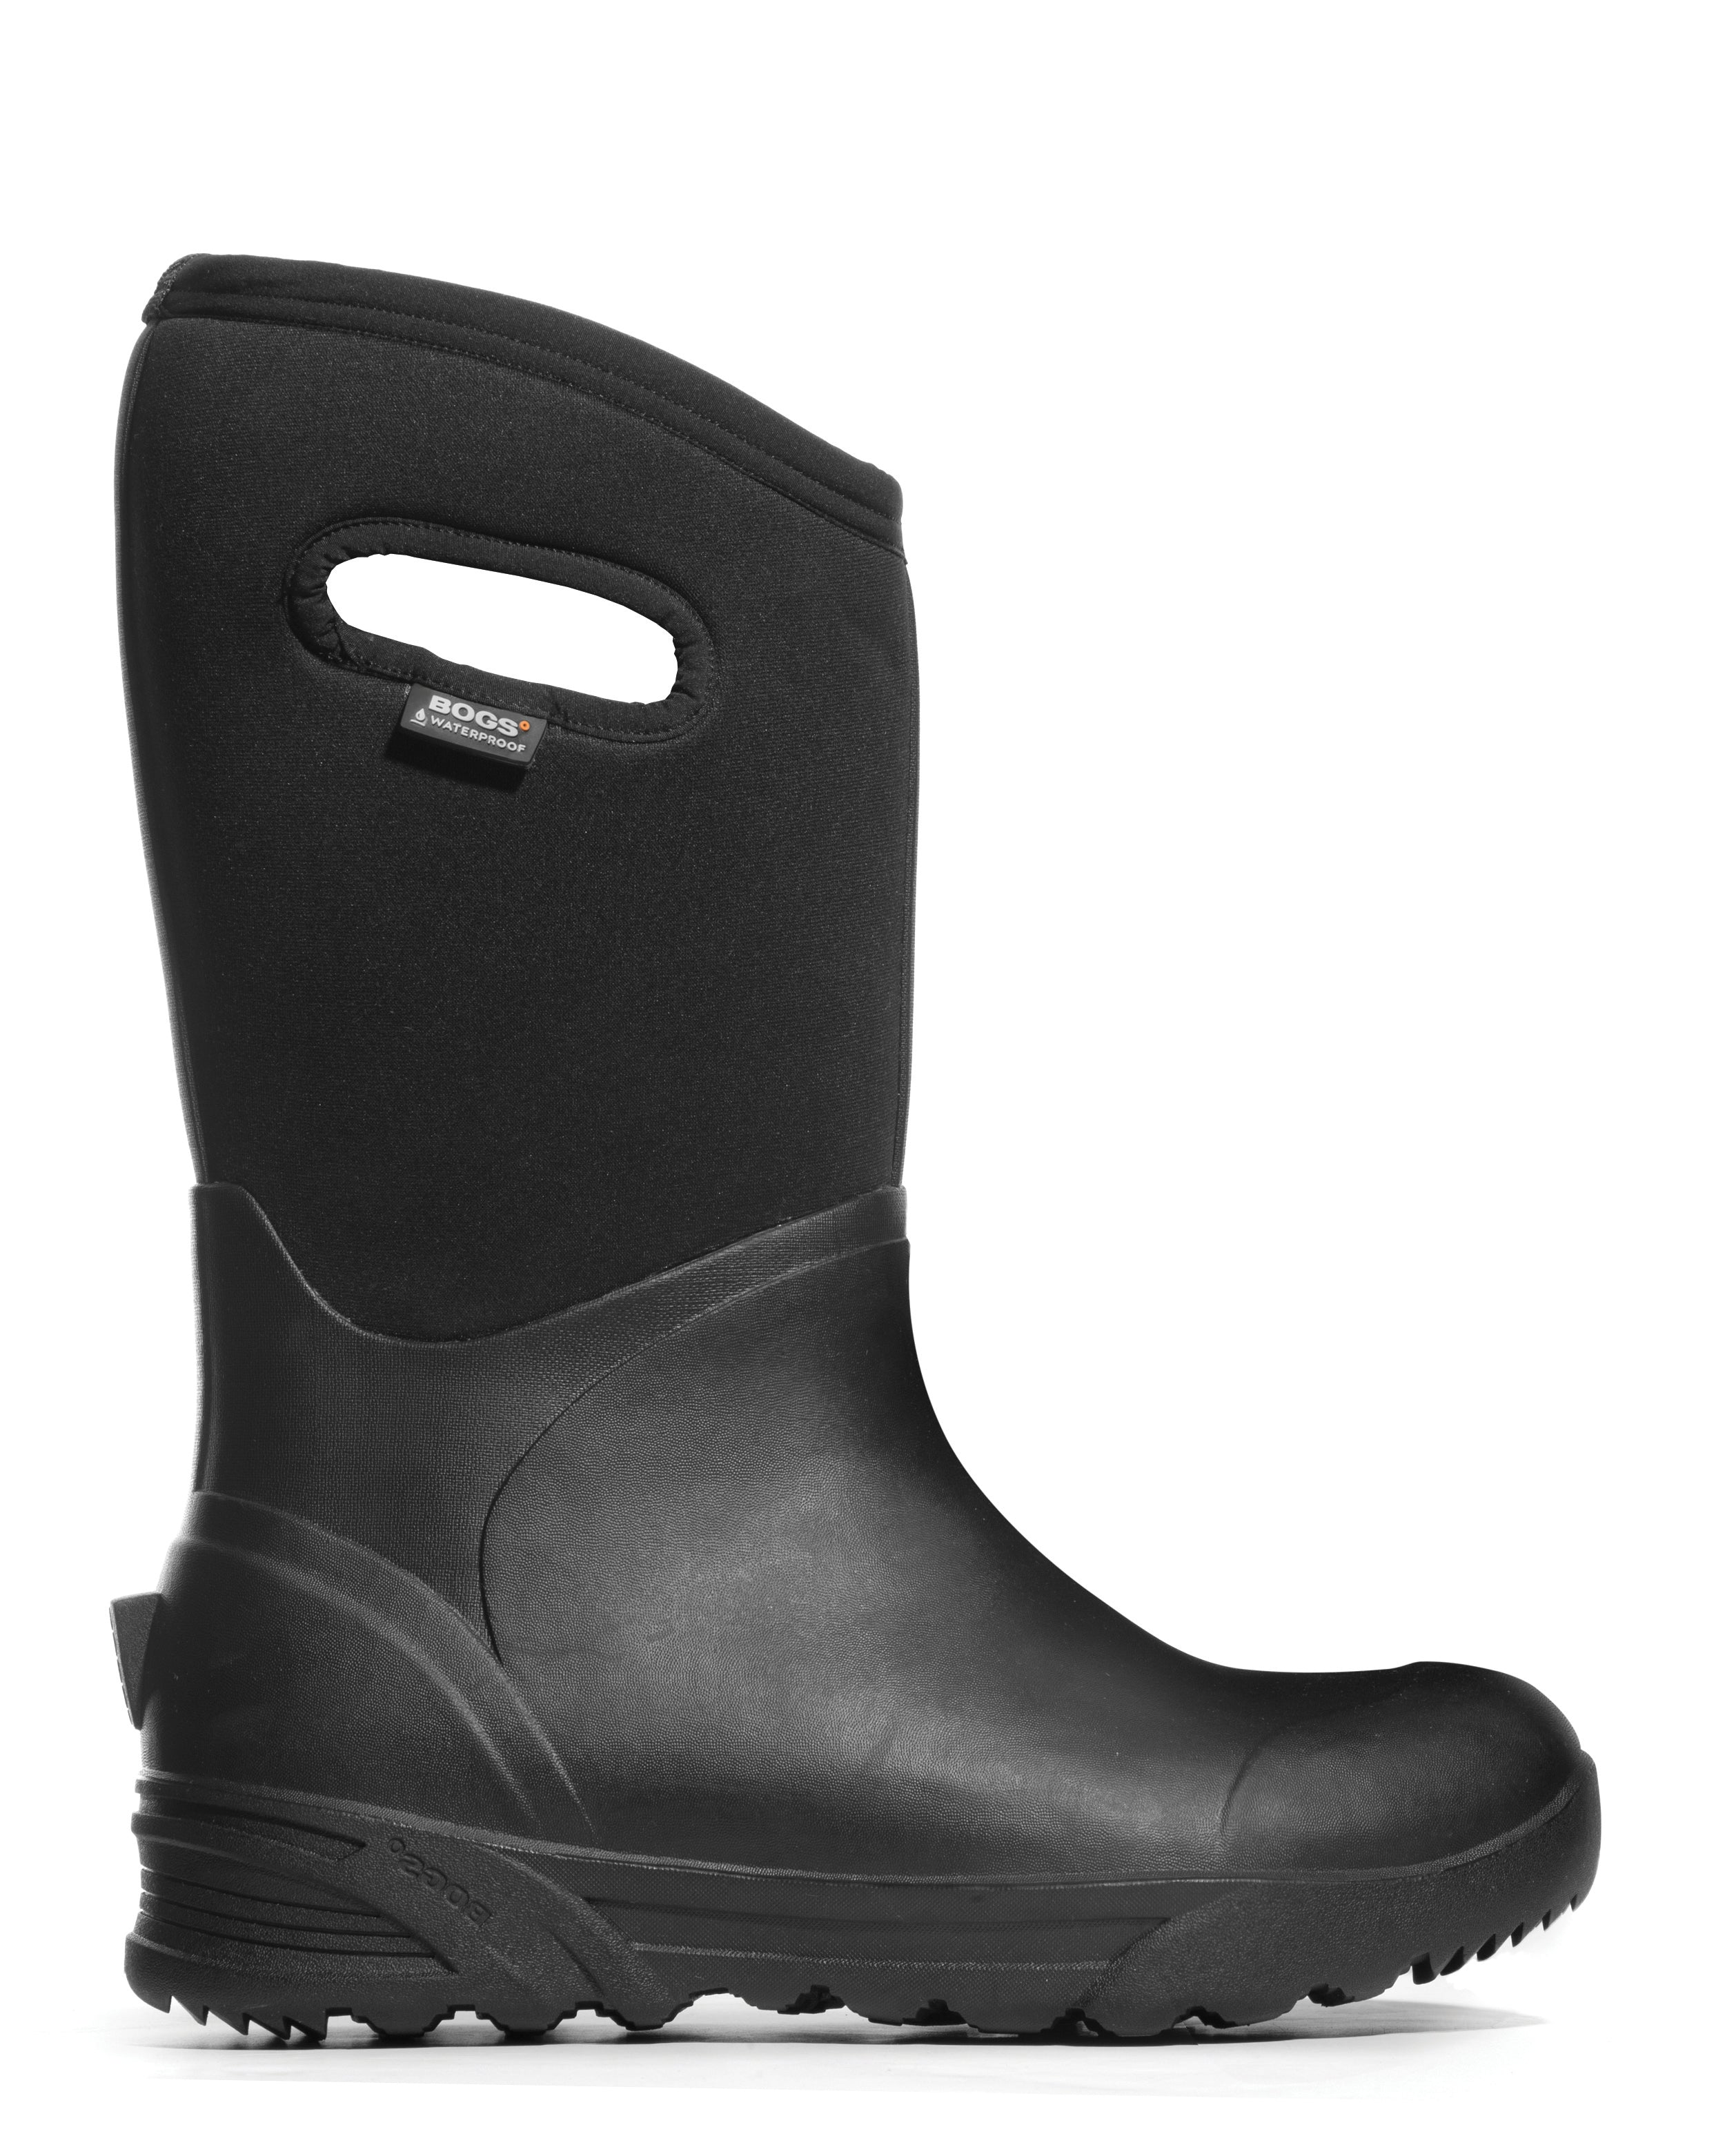 BOGS Bozeman Tall Men's Winter Boot. You won't find a better boot, anywhere.